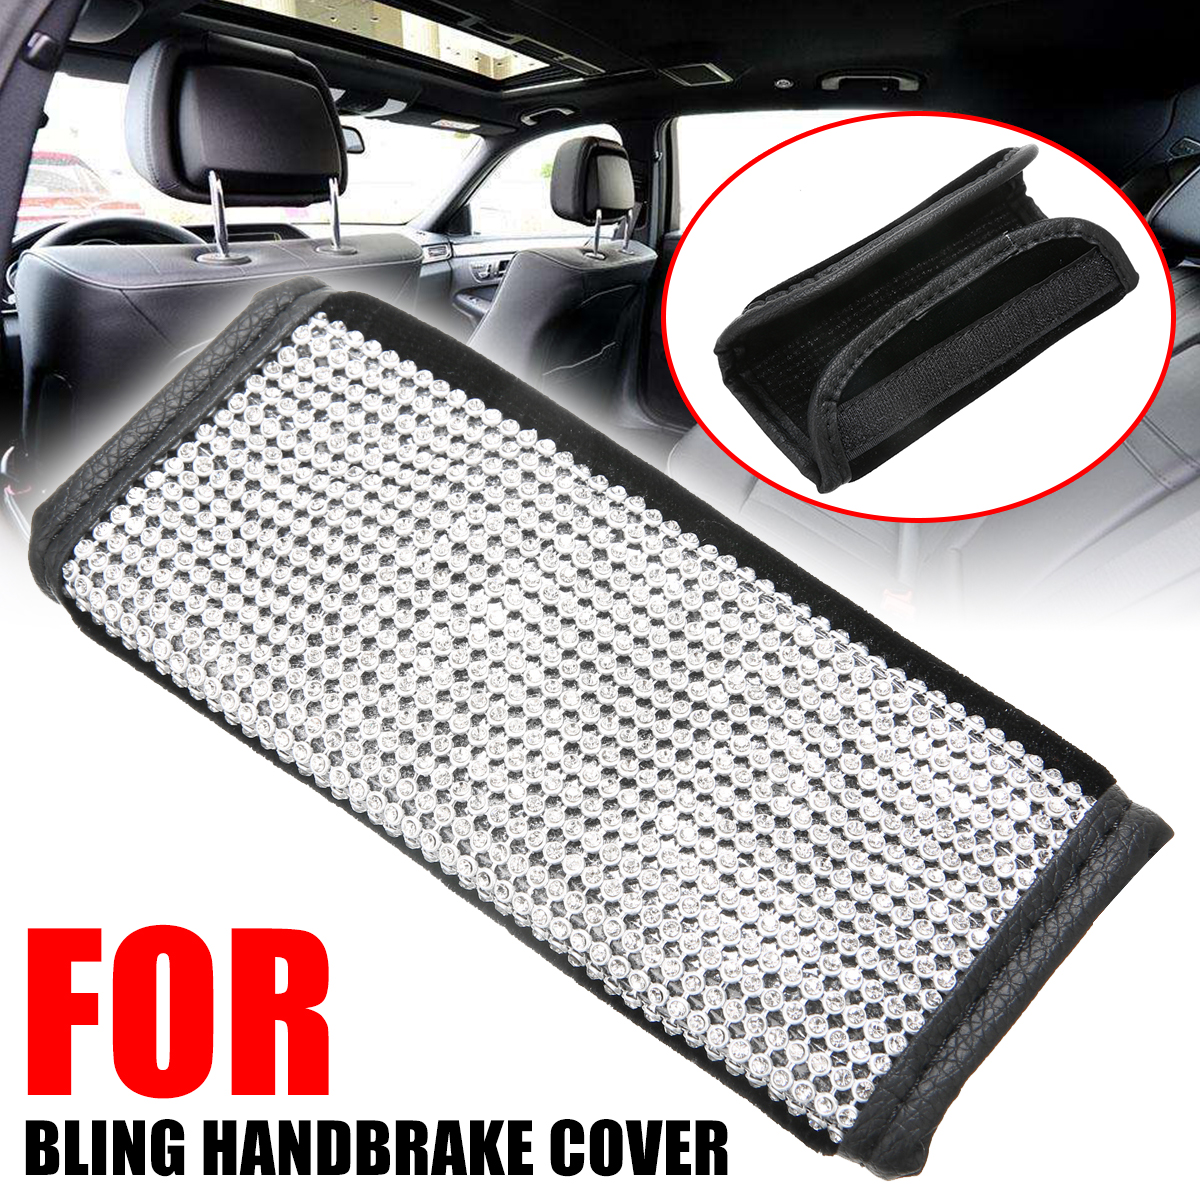 For Car Auto Interior Decor 1PC Bling Rhinestone Crystal Handbrake Decorative Cover PU Leather Hand Brake Protection